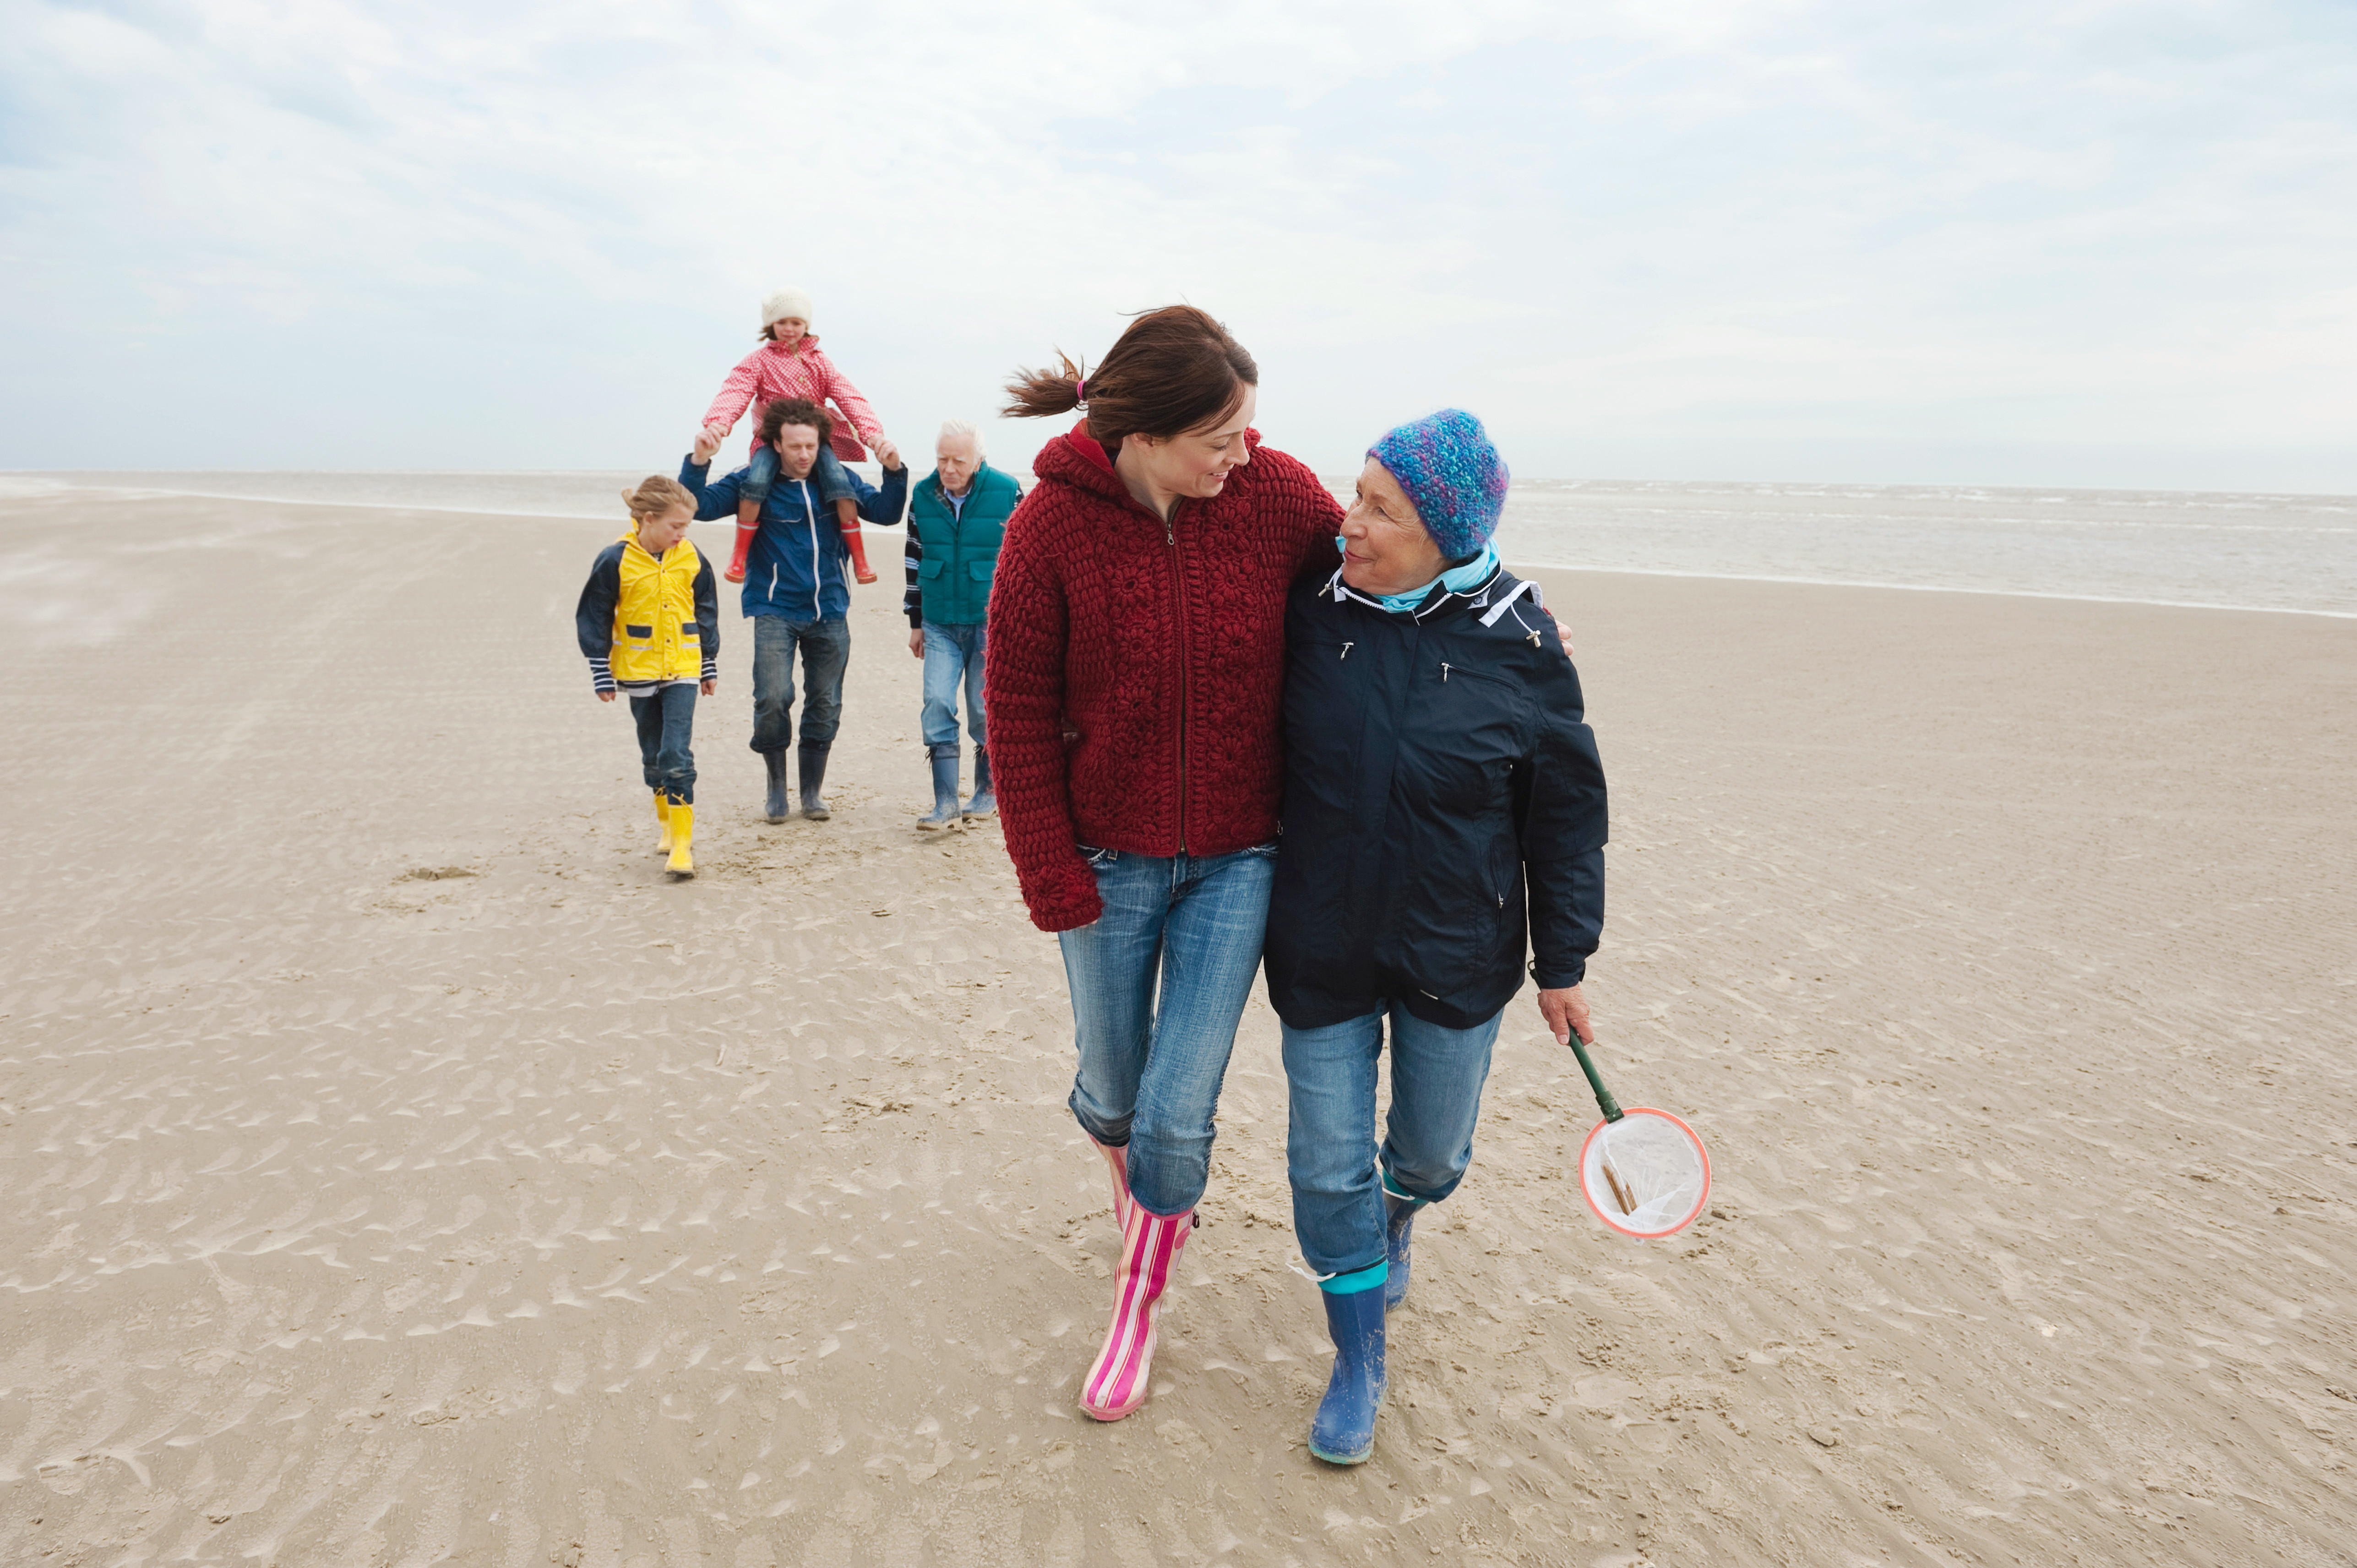 Germany, St. Peter-Ording, North Sea, Family  walking on beach